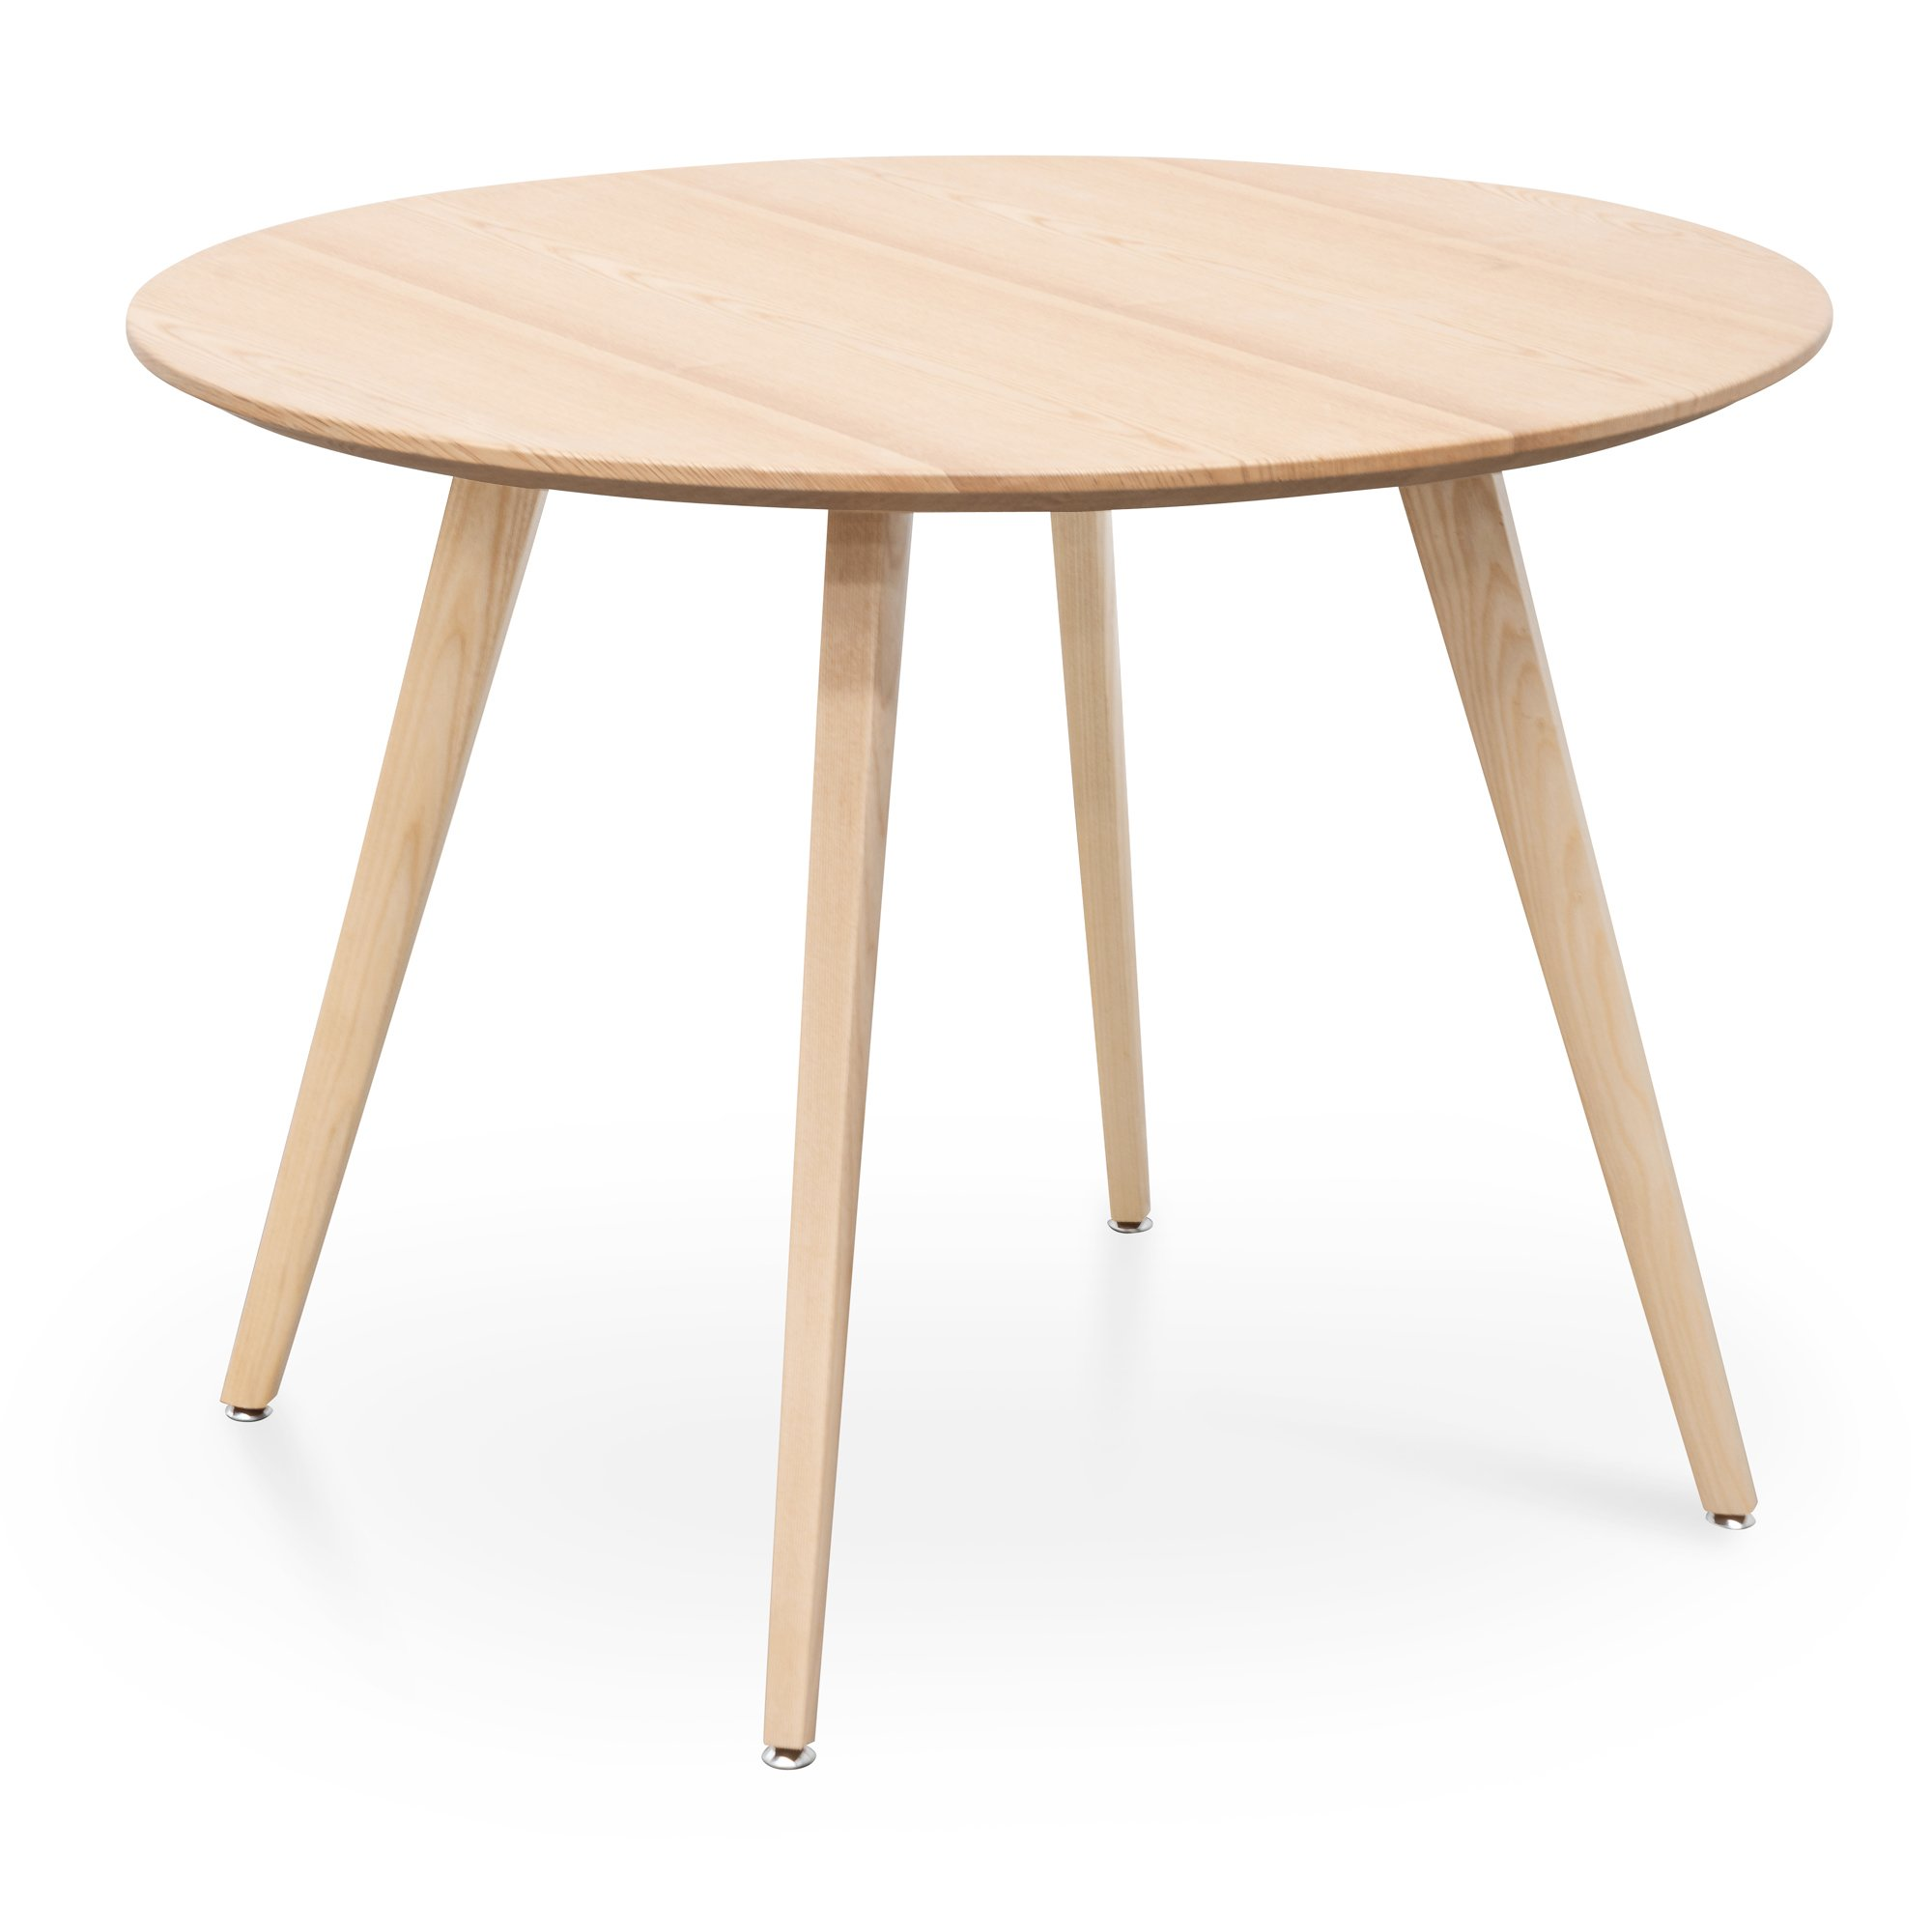 Halo 100cm Round Wooden Dining Table Natural Interior Secrets